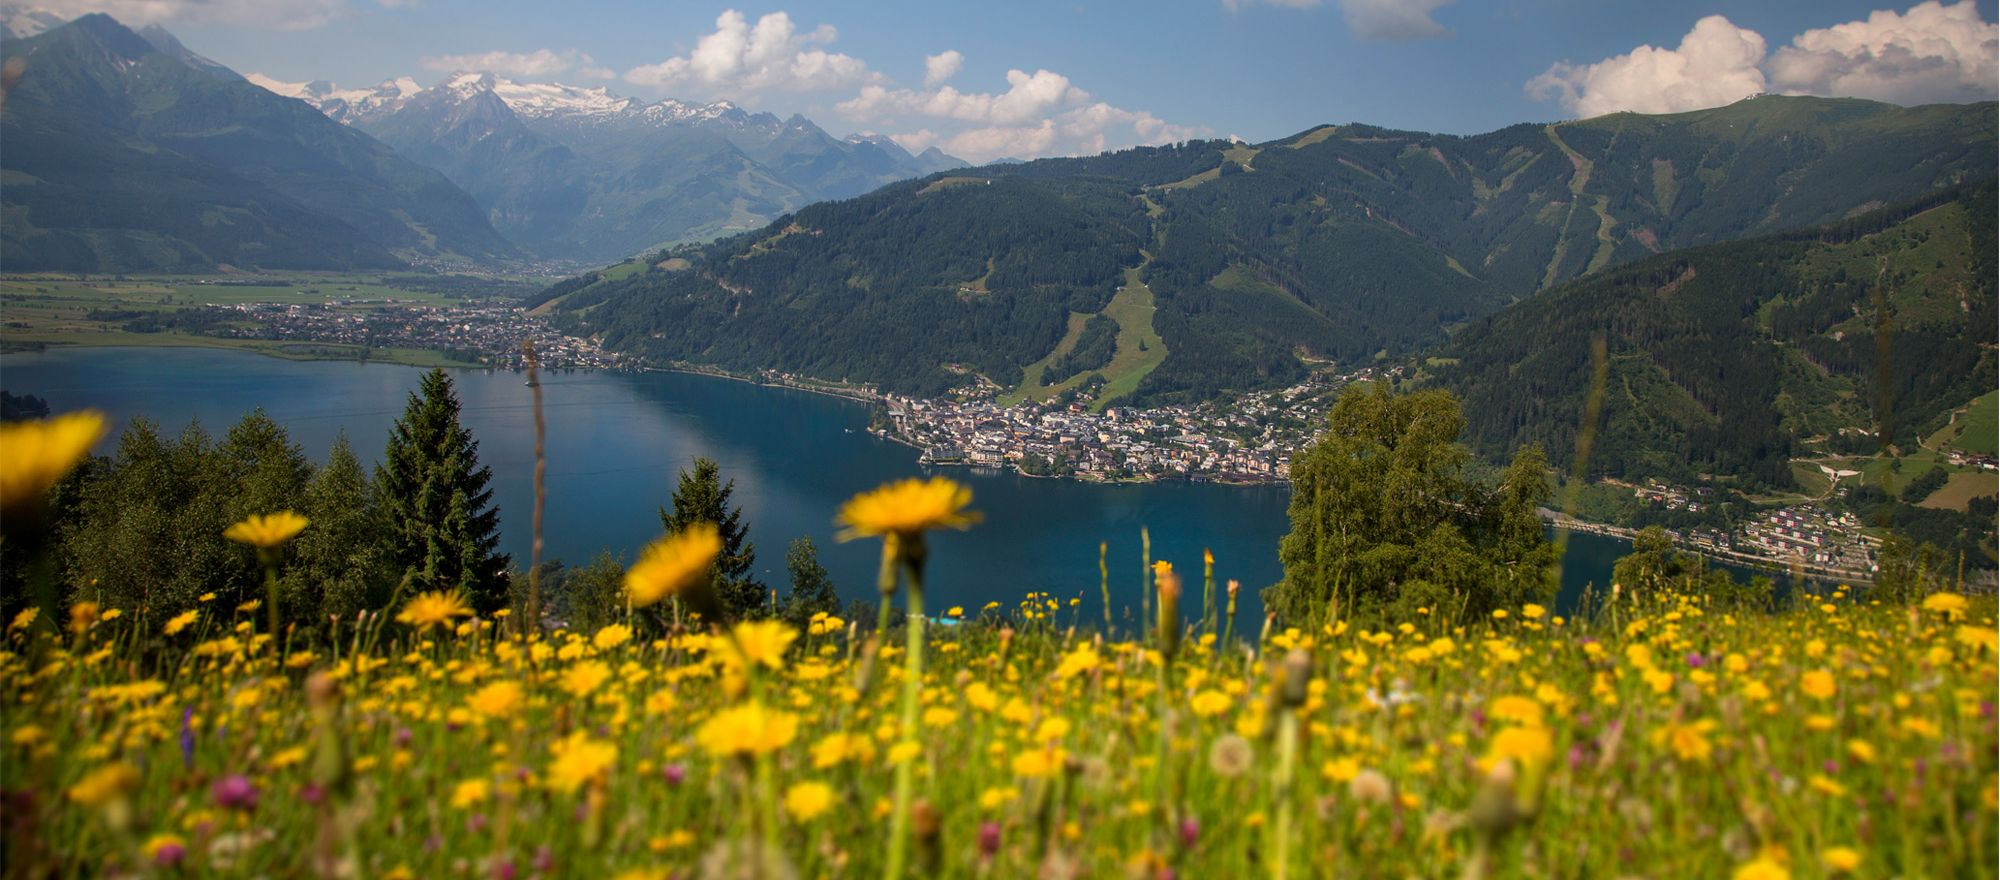 Holiday in Zell am See